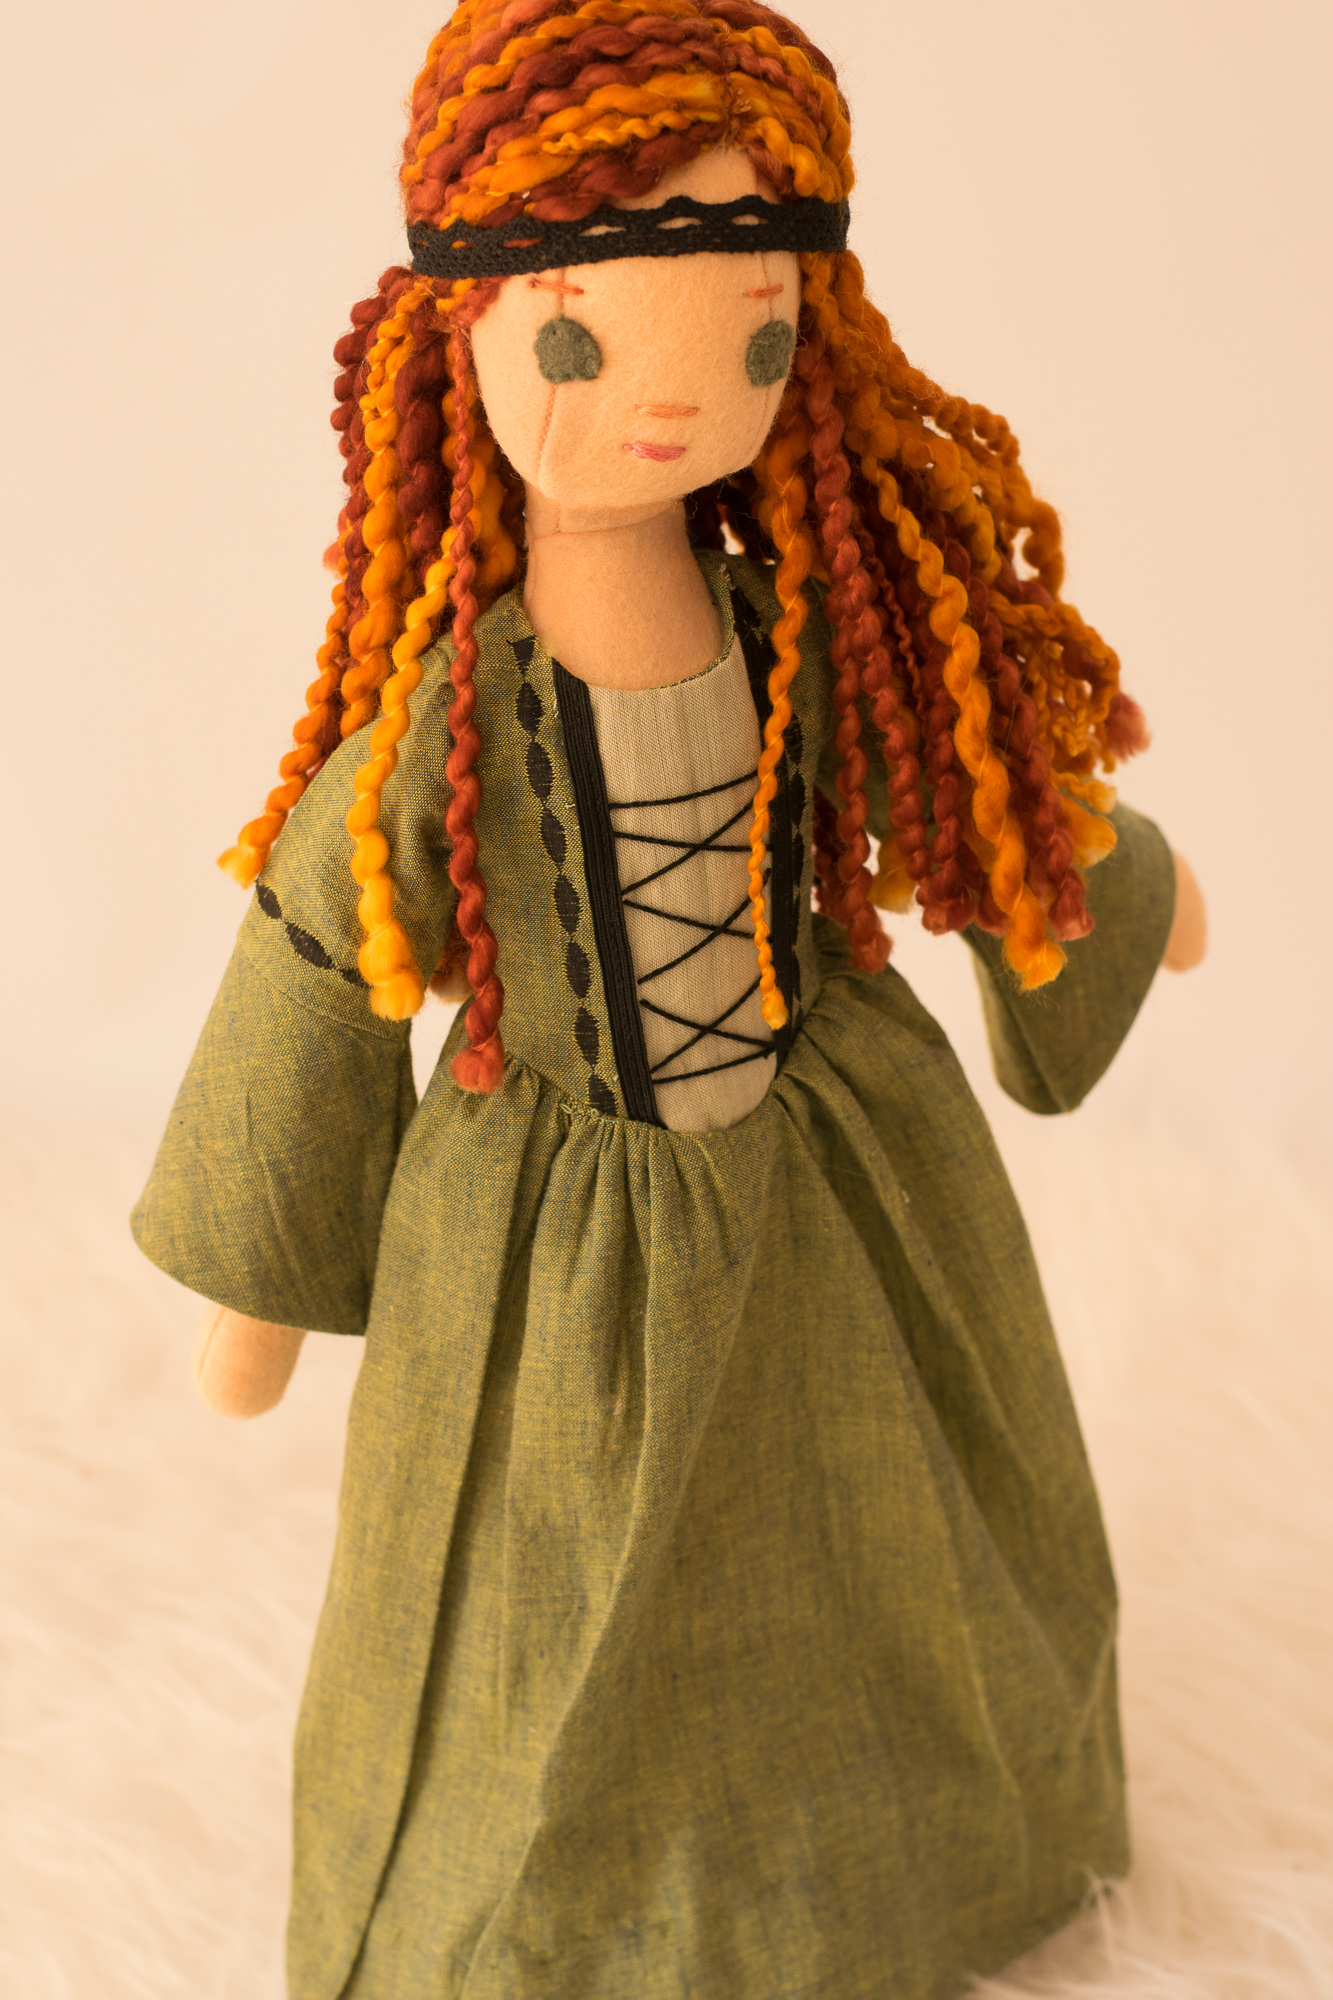 Grace O'Malley doll